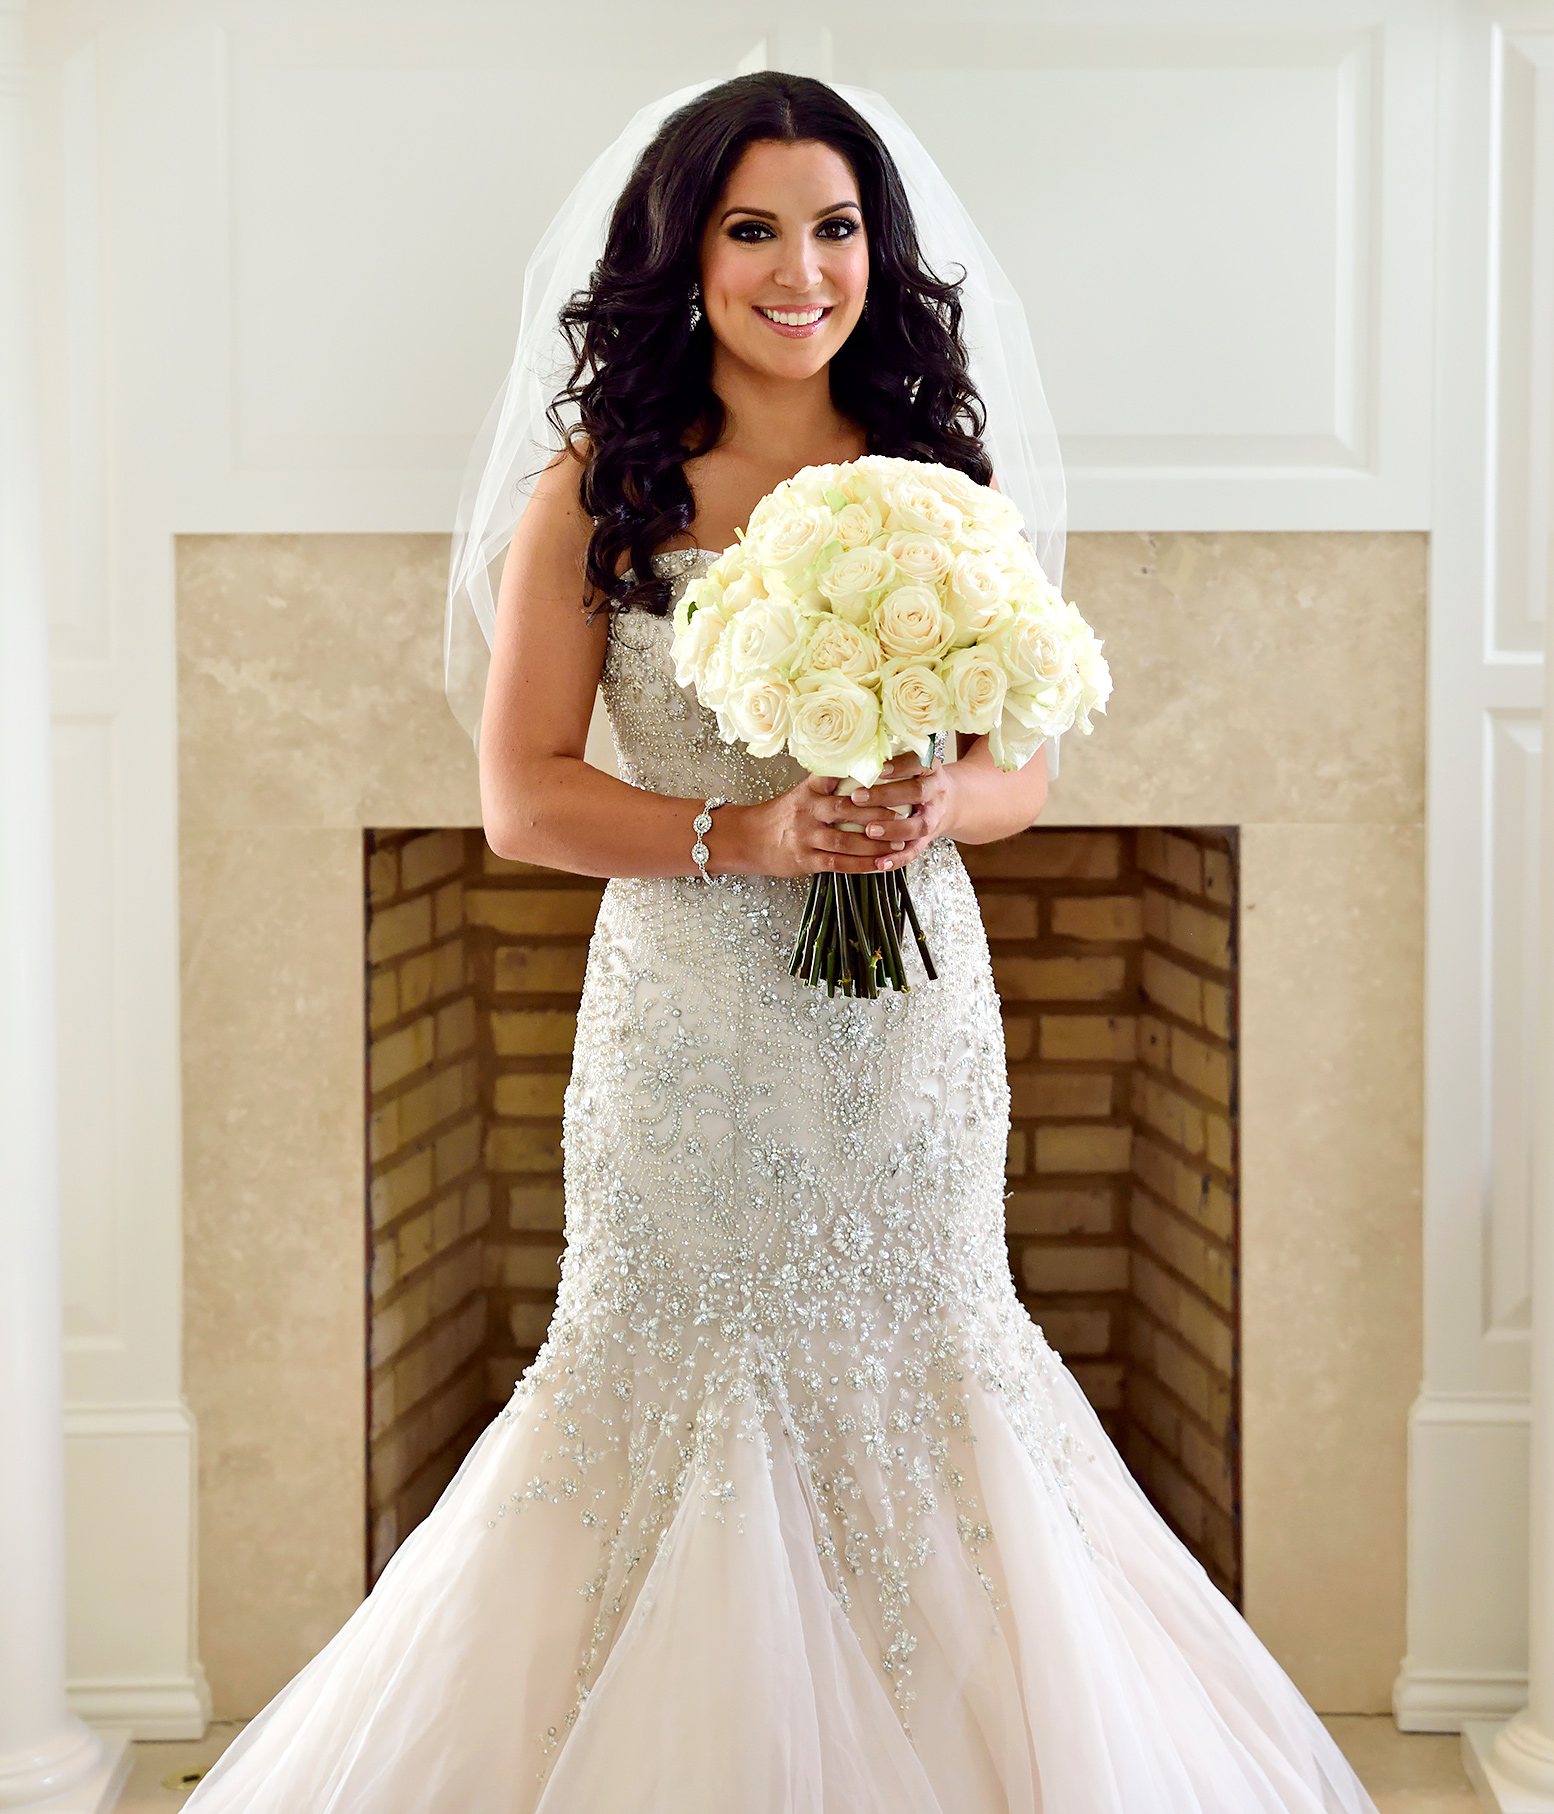 married at first sight wedding dresses get the look mermaid dress wedding Ashley wore a beaded mermaid gown for her wedding to David on Married at First Sight